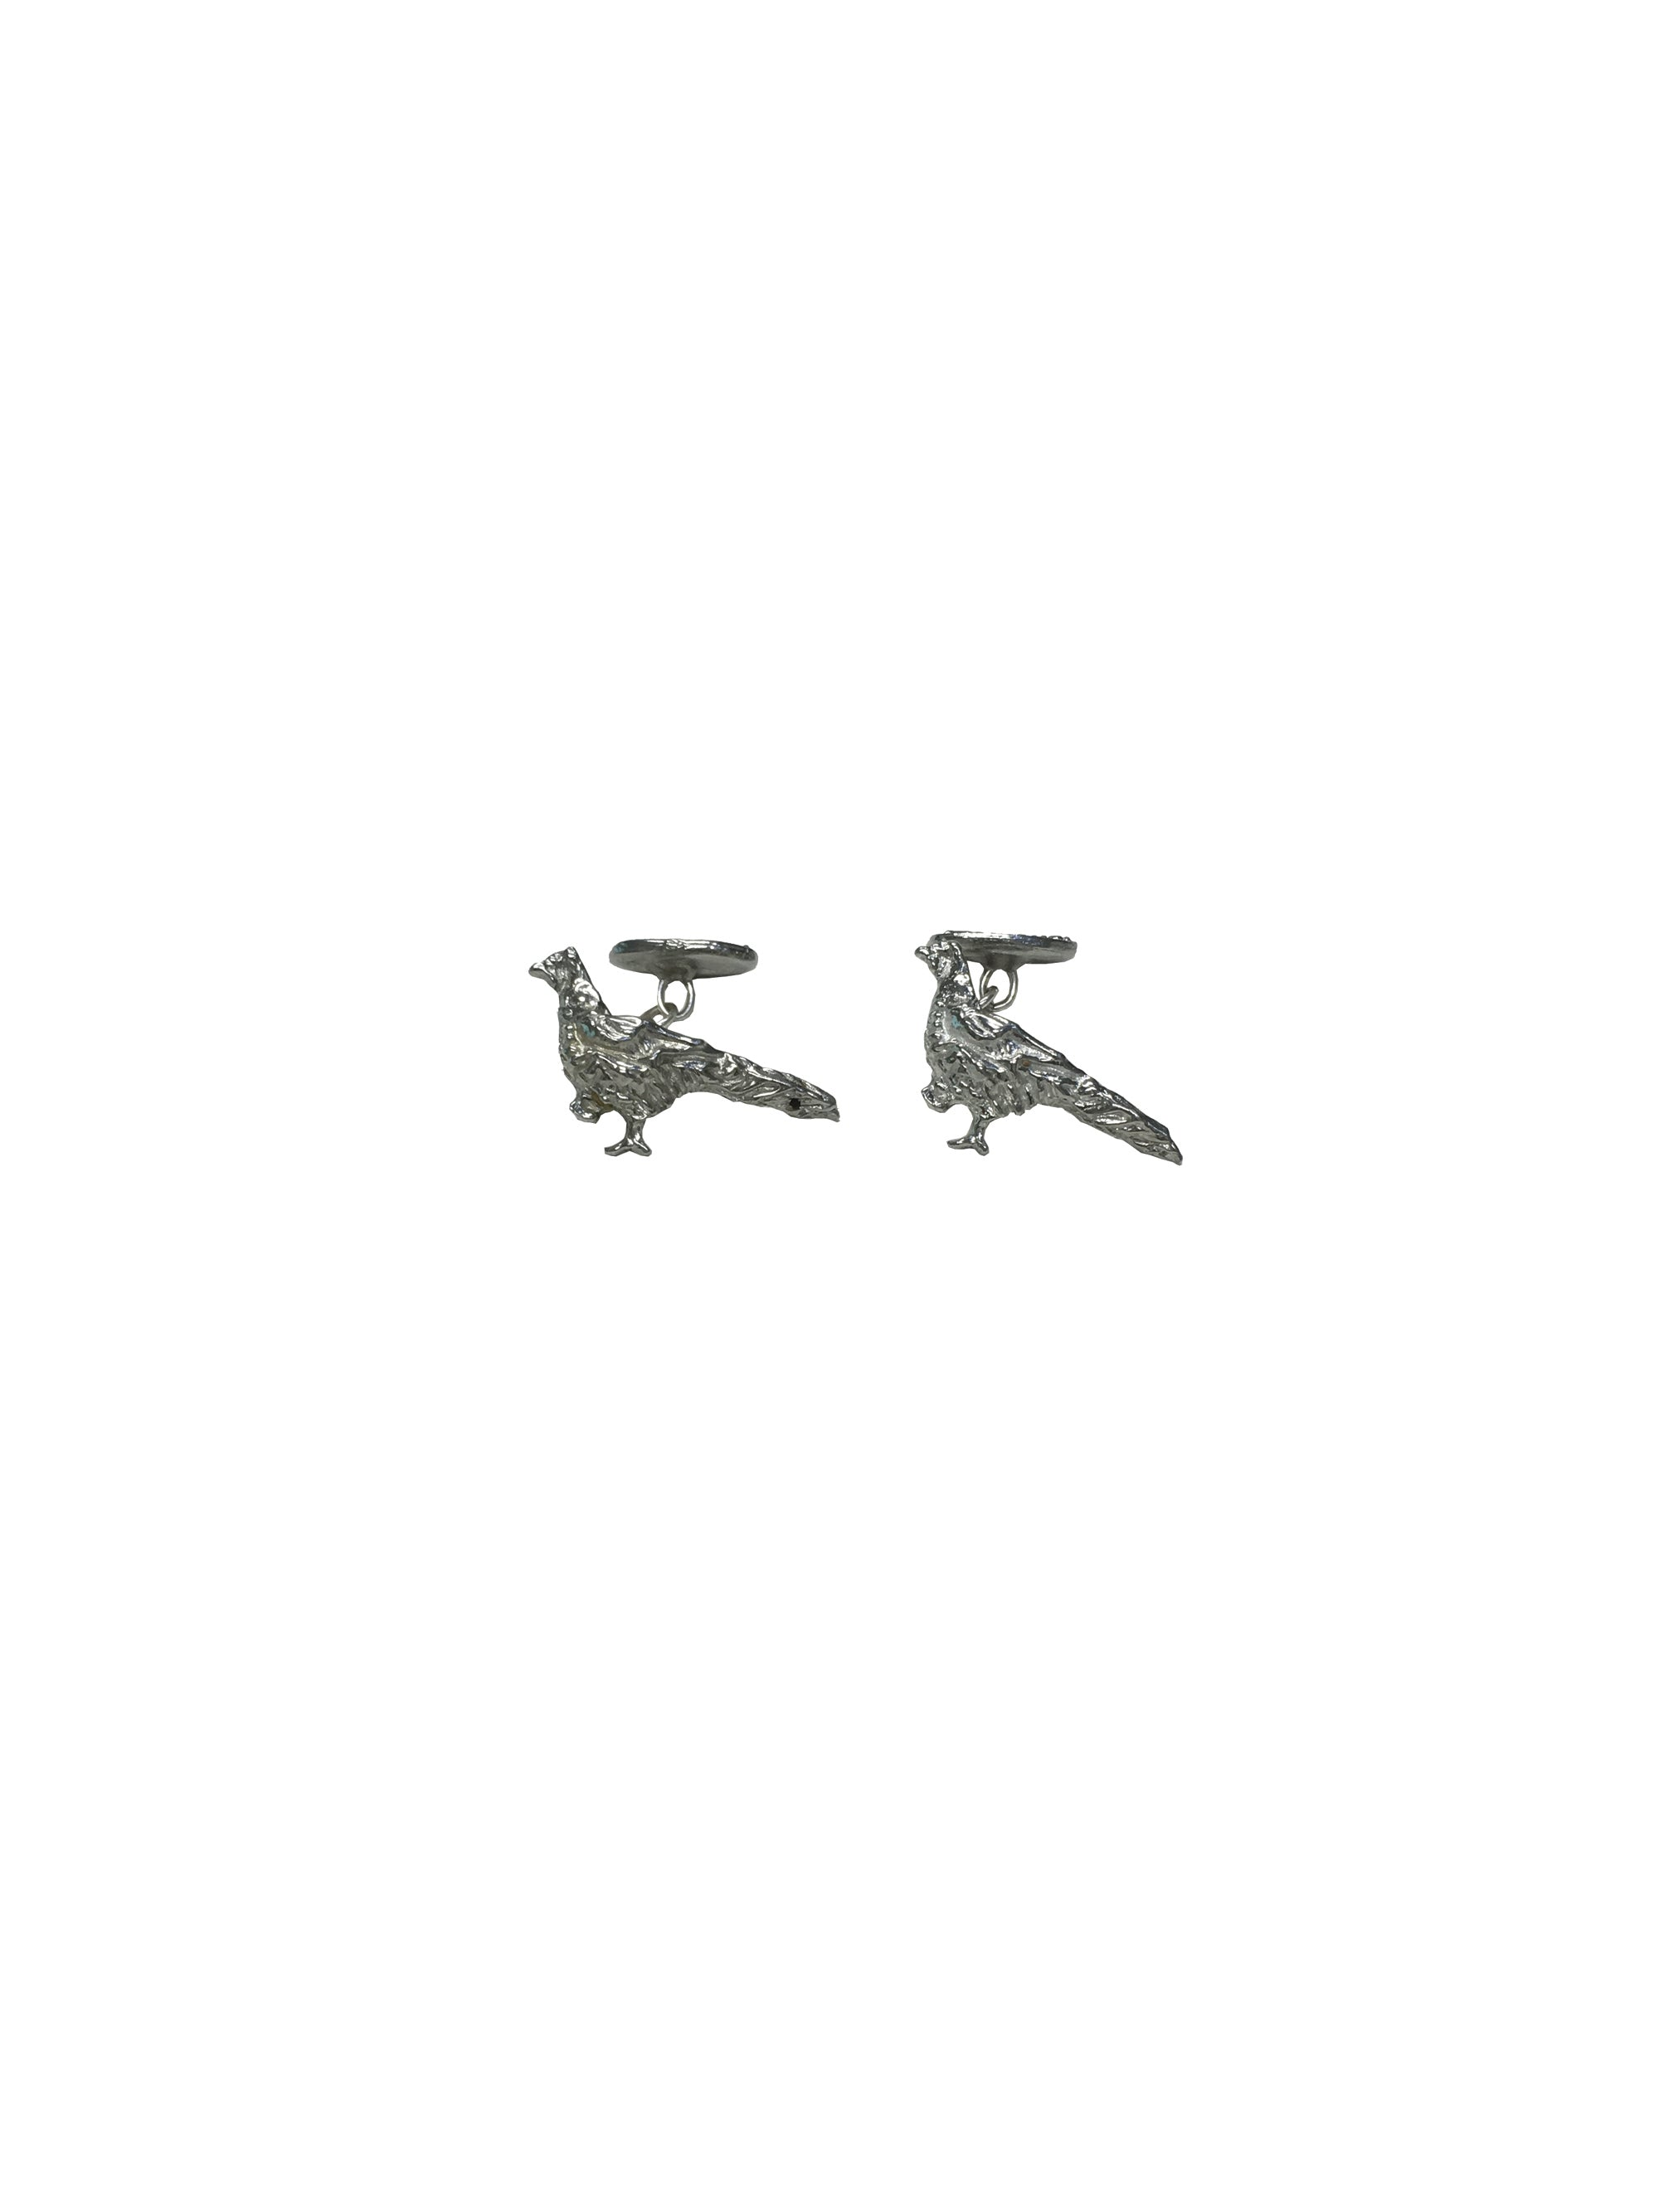 Schoffel Pheasant Cufflinks for Men in Pewter